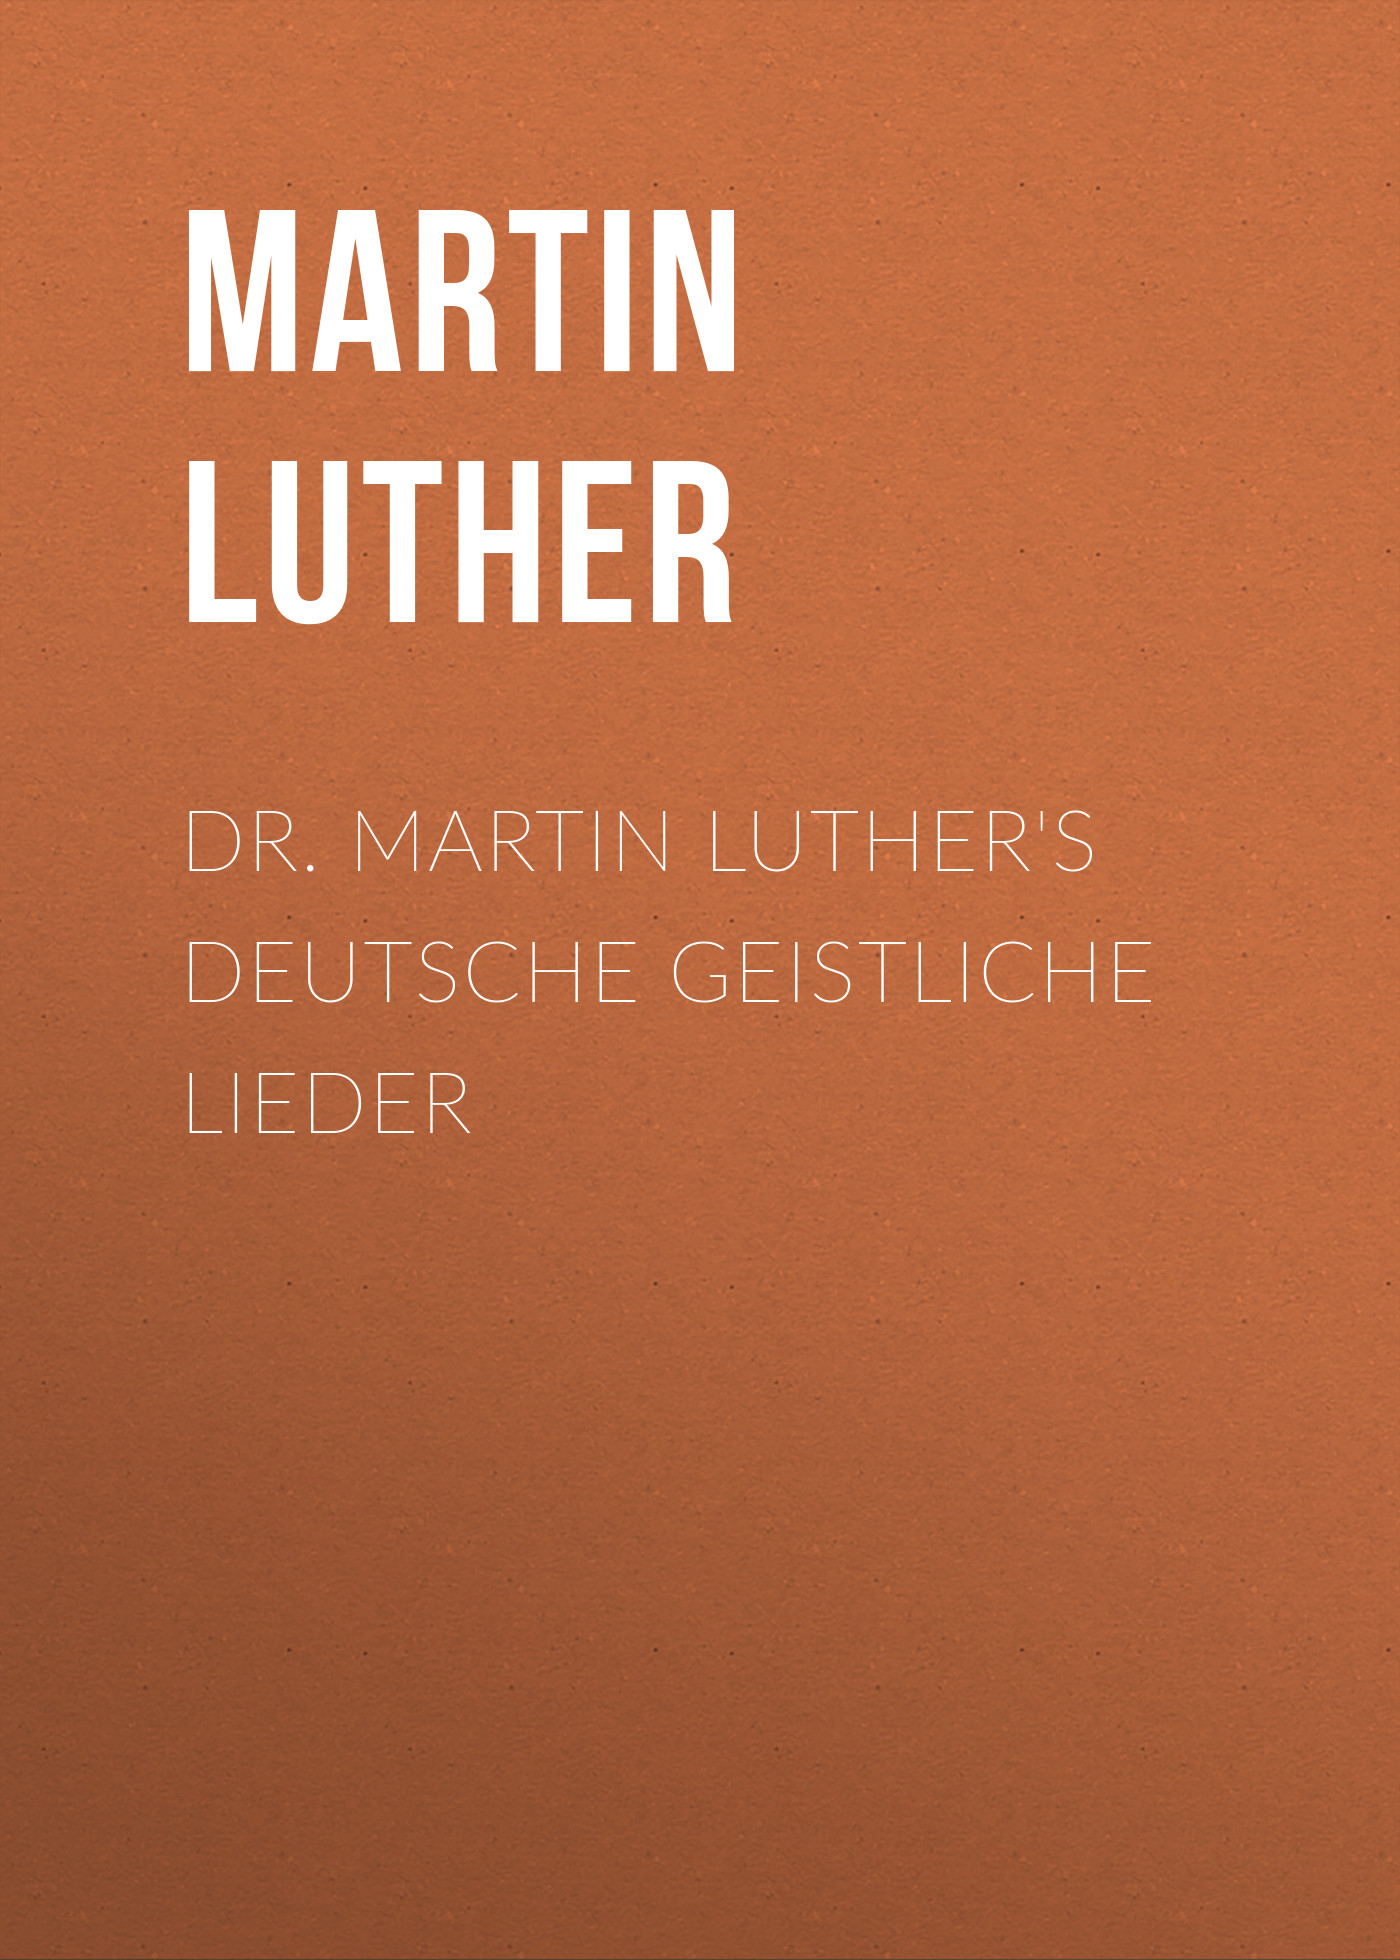 Martin Luther Dr. Martin Luther's Deutsche Geistliche Lieder